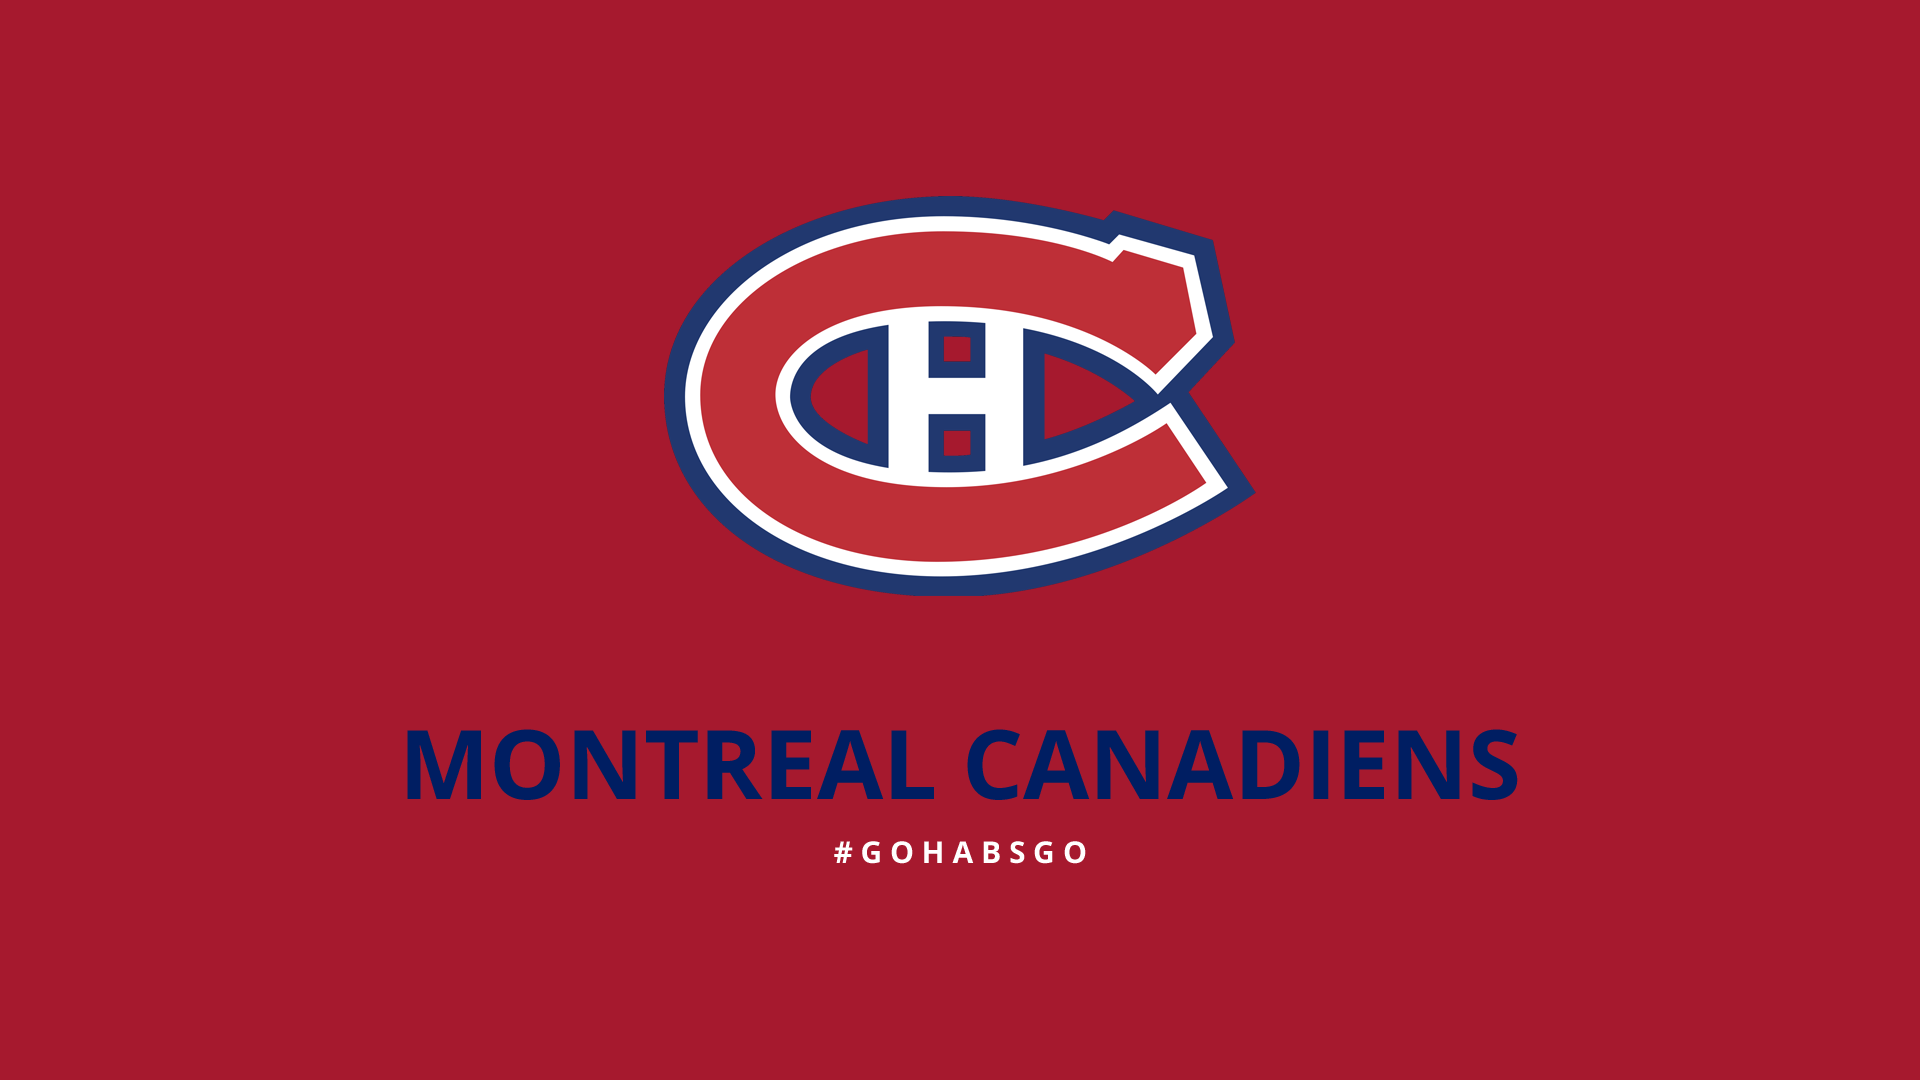 Good Wallpaper Logo Montreal Canadiens - Montreal-Canadiens-montreal-canadiens-40371134-1920-1080  Best Photo Reference_446796.png